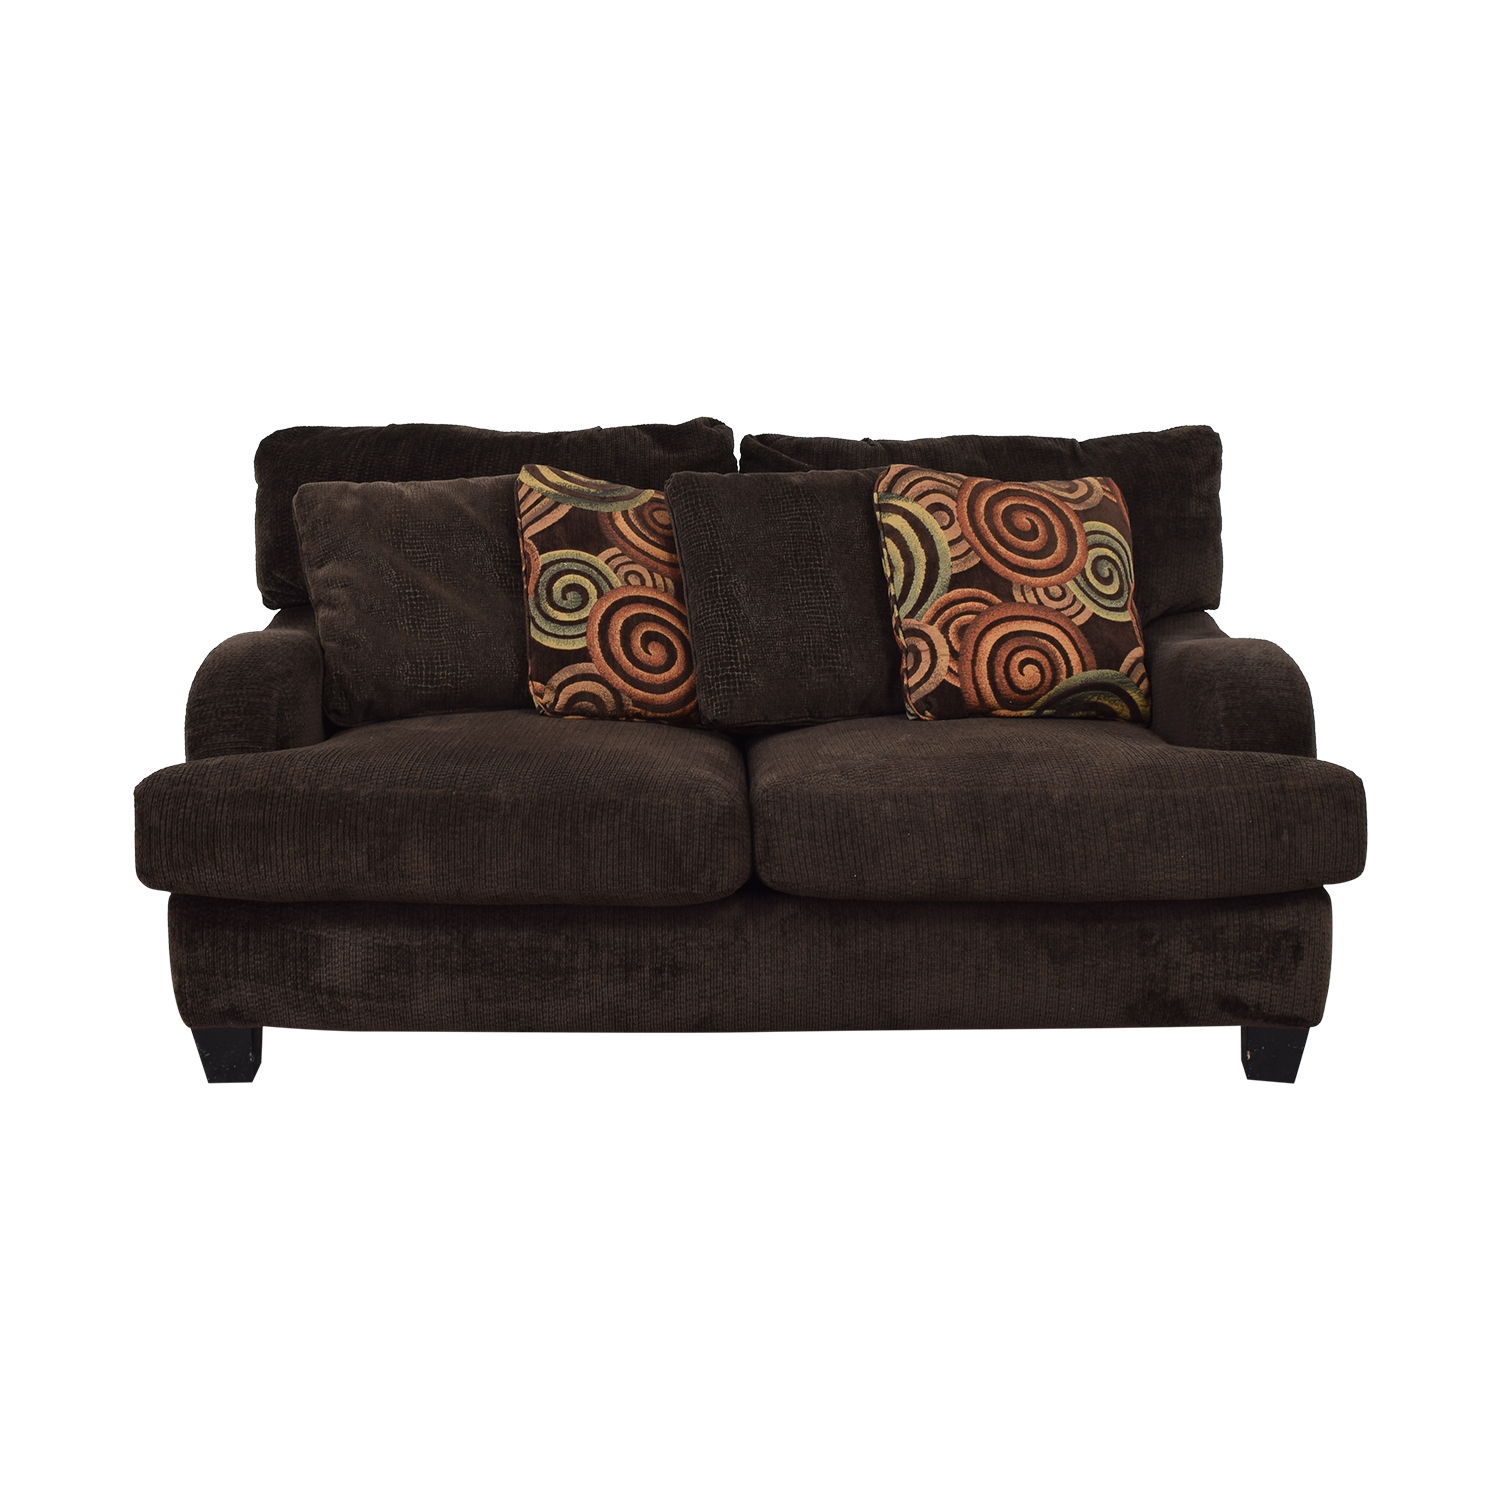 shop Bob's Discount Furniture Loveseat Bob's Discount Furniture Loveseats